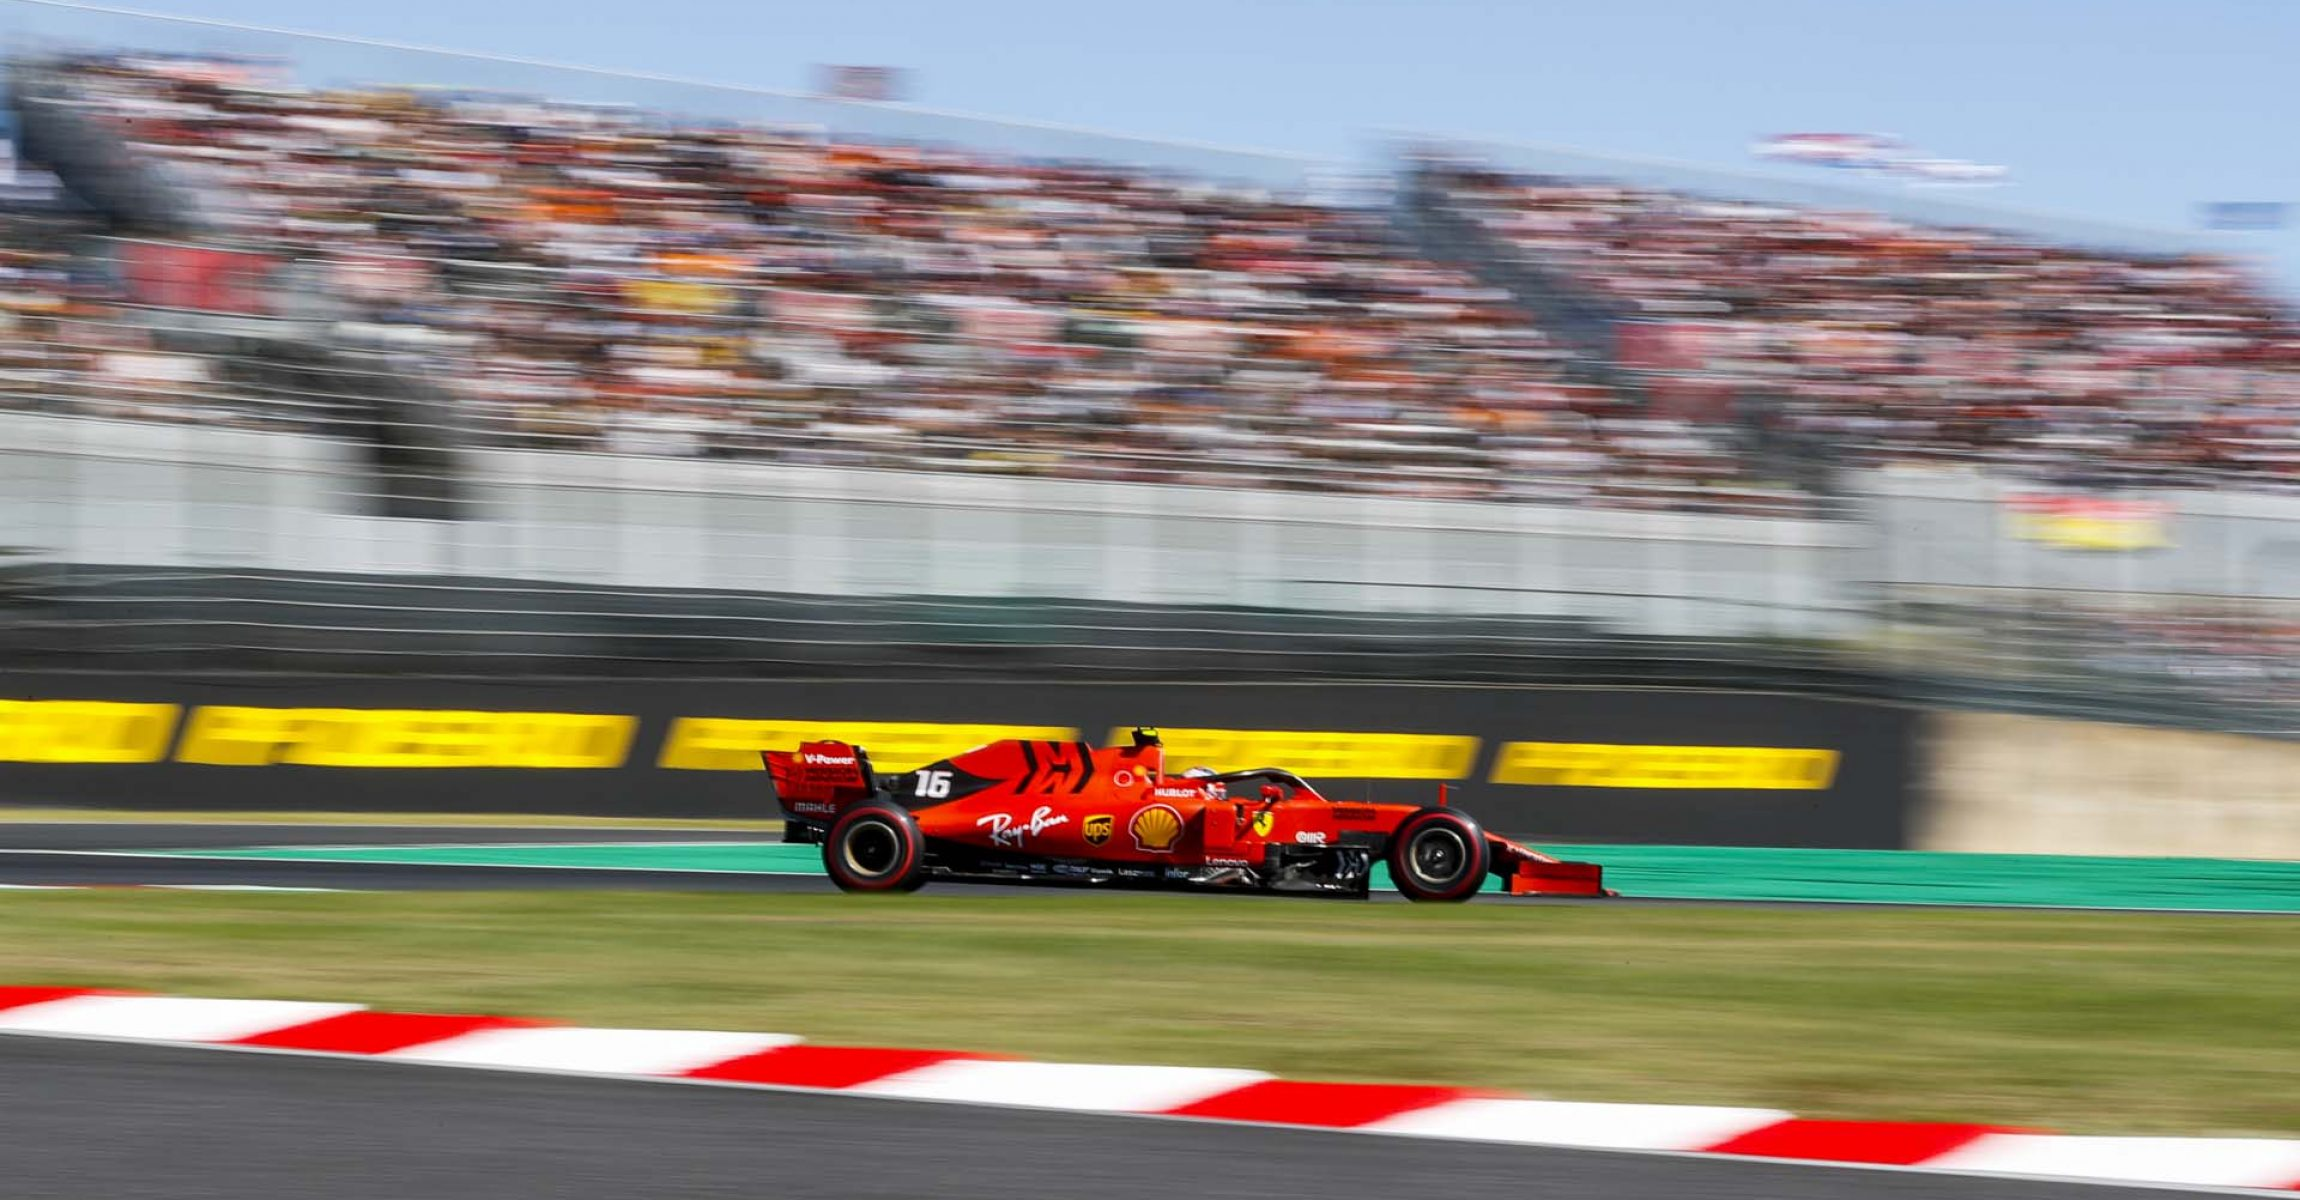 SUZUKA, JAPAN - OCTOBER 13: Charles Leclerc, Ferrari SF90 during the Japanese GP at Suzuka on October 13, 2019 in Suzuka, Japan. (Photo by Steven Tee / LAT Images)